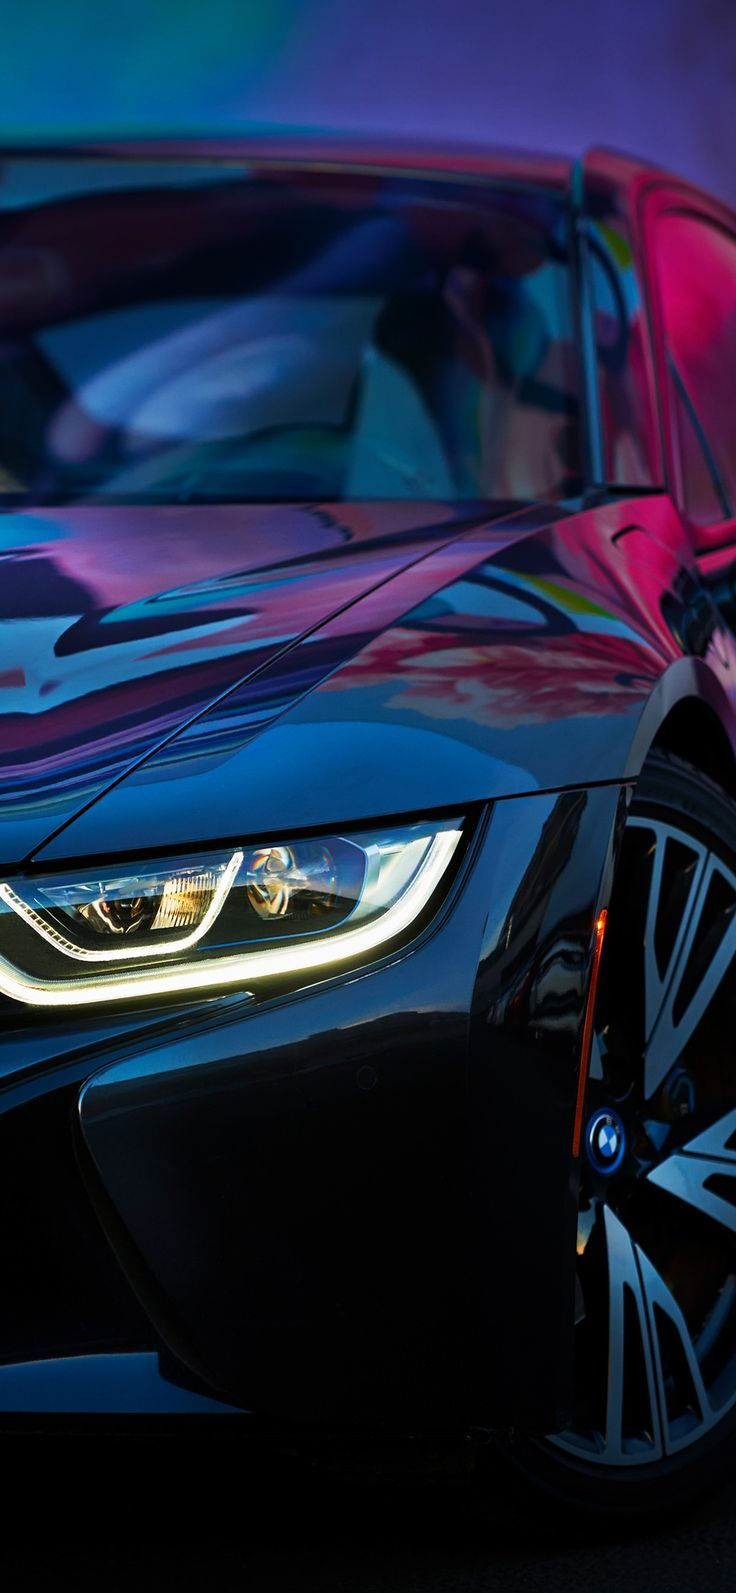 Amazing 1125 2436 Bmw I8 2018 Iphone X Iphone 10 Hd 4k Wallpapers Images Backgrounds Car Iphone Wallpaper Bmw Wallpapers Bmw